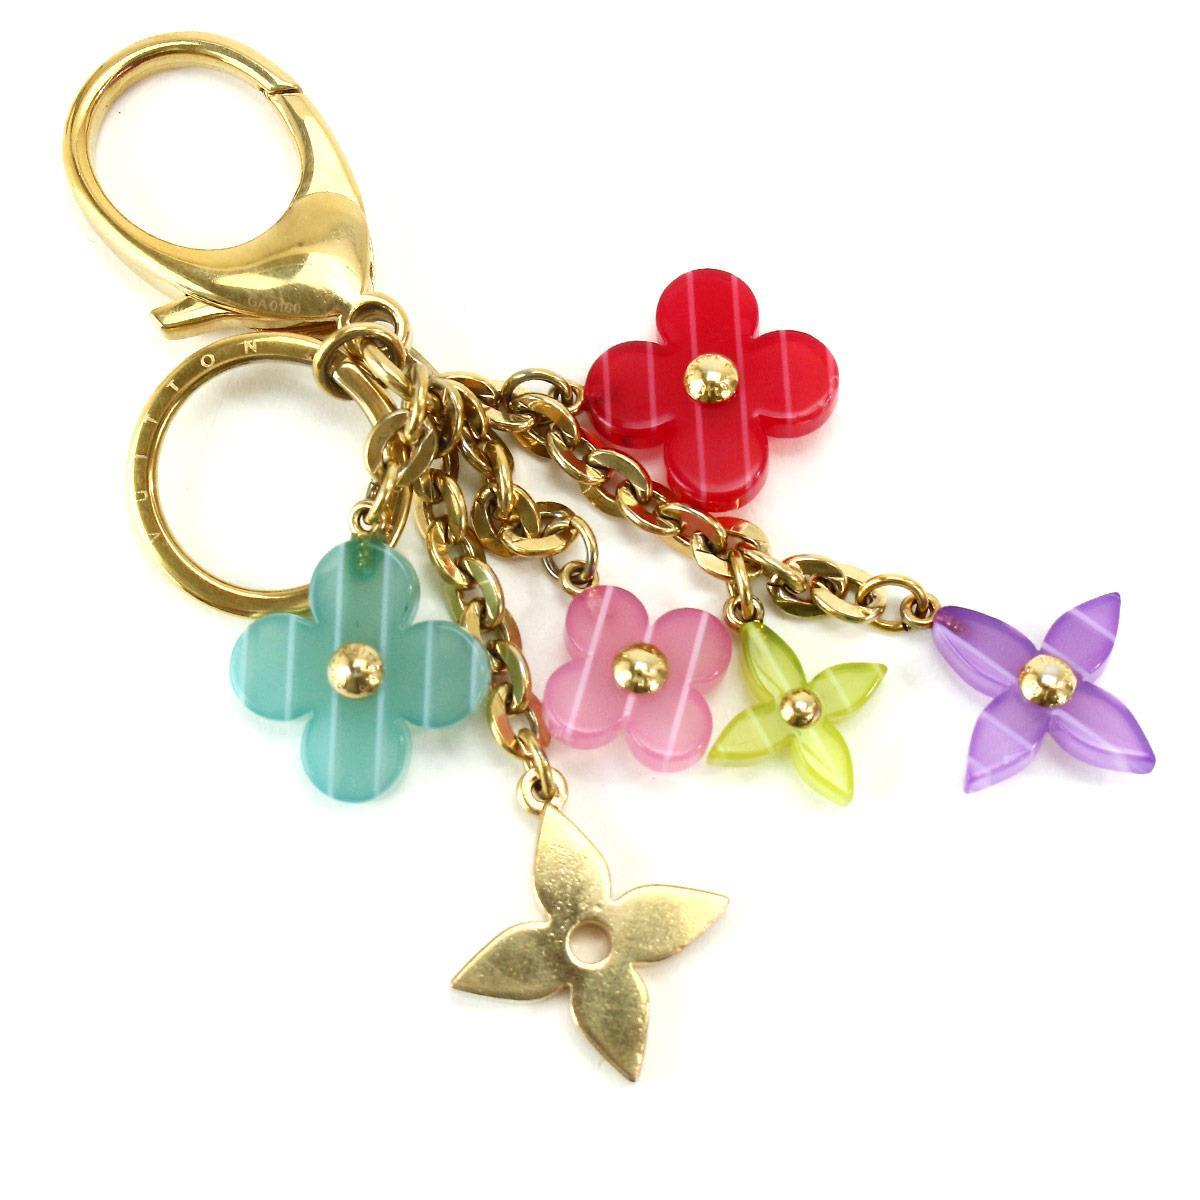 MULTICOLORED FLORAL KEY CHAIN